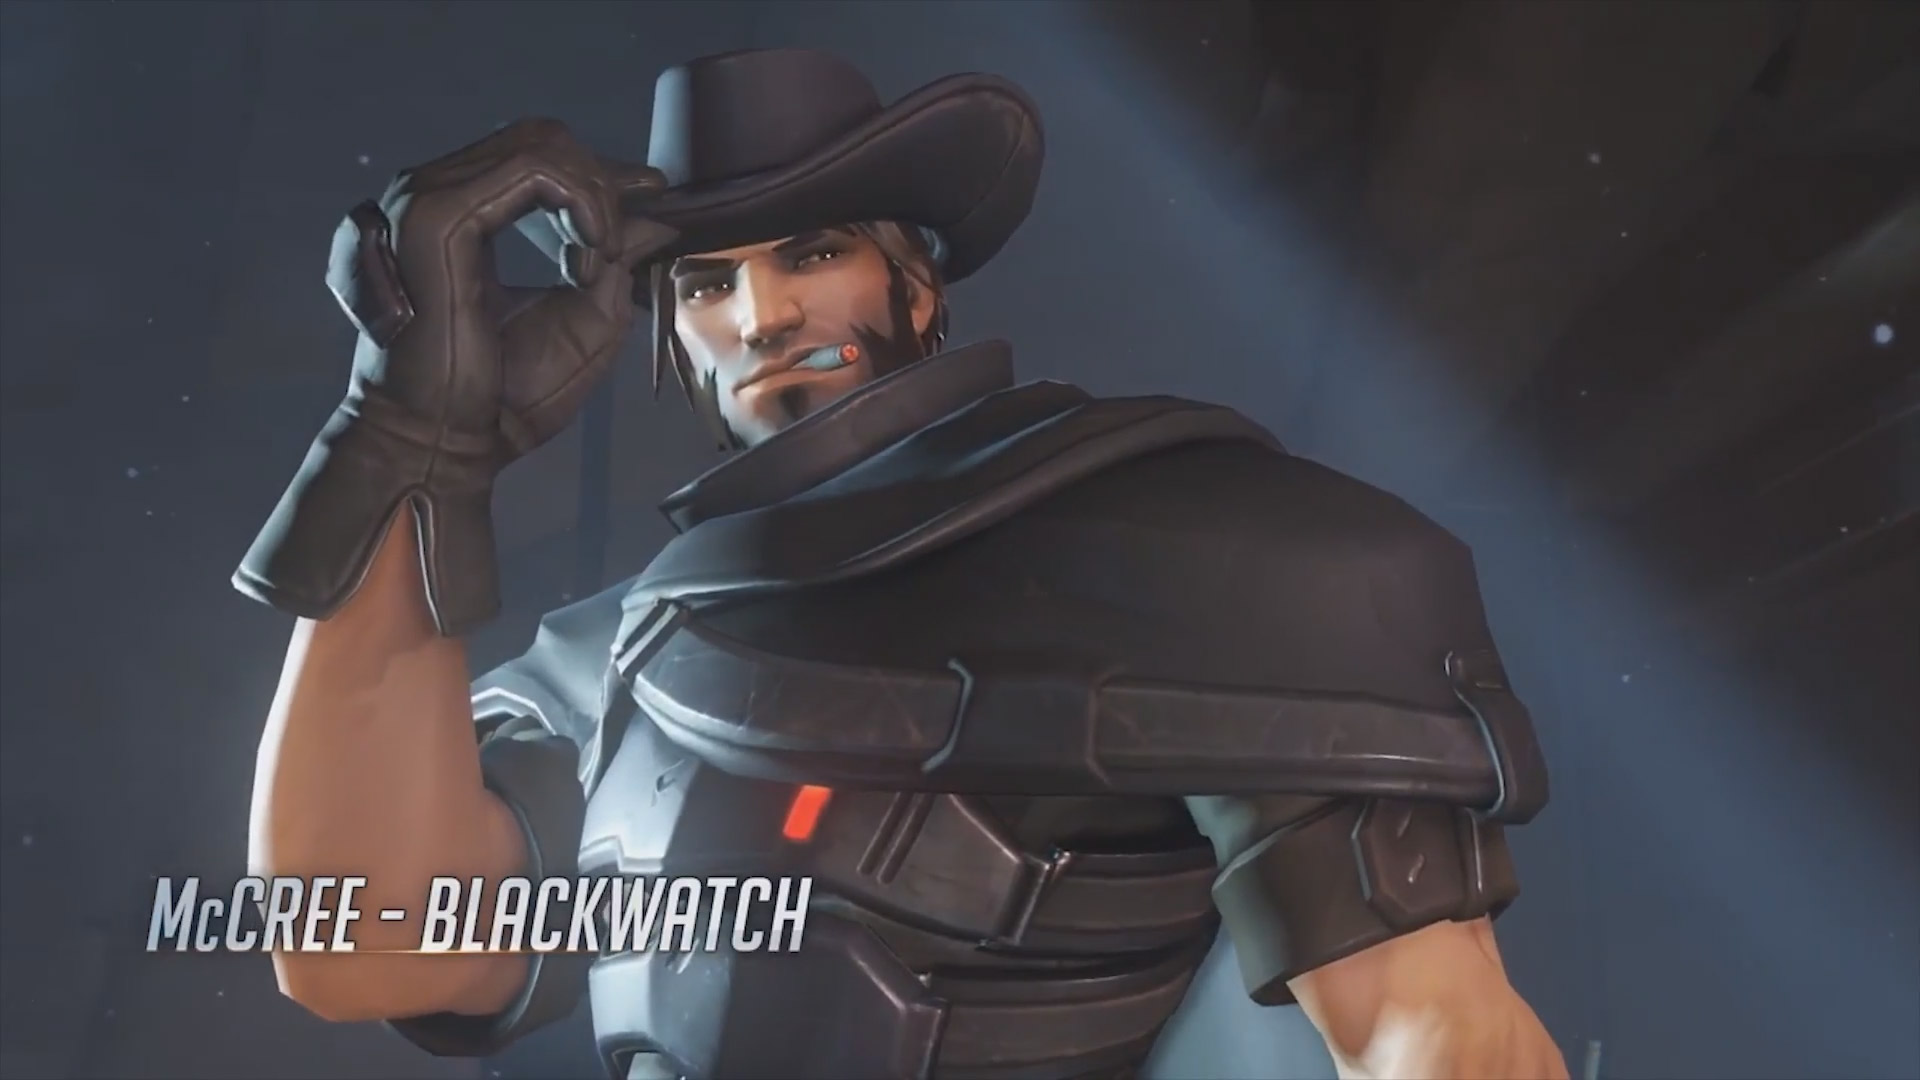 McCree Insurrection